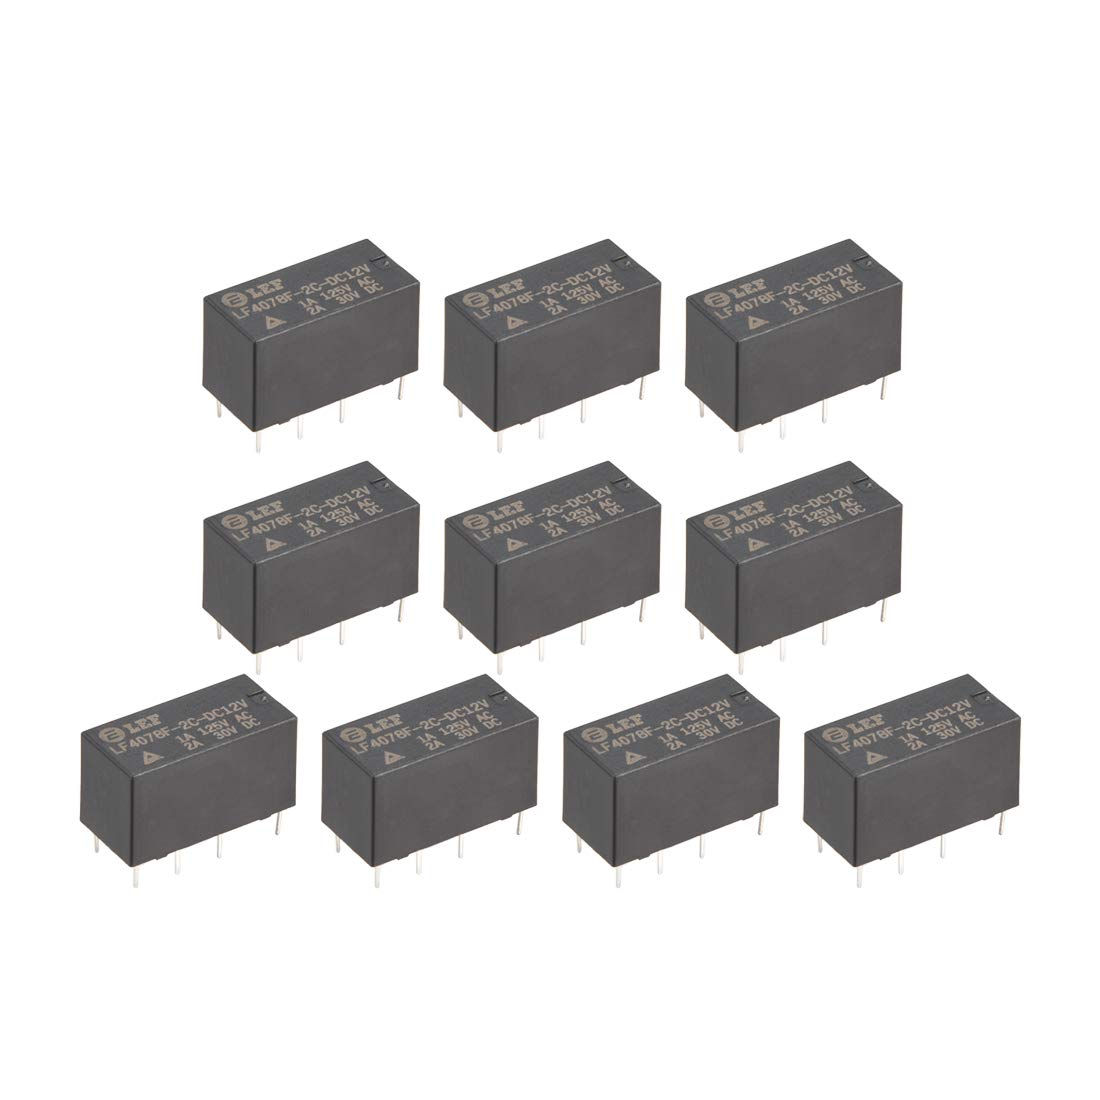 uxcell 10Pcs DC 12V Coil DPDT 2NO+2NC 8P Power Electromagnetic Relay DIN Rail/PCB Mounted 125VAC 1A /30VDC 2A